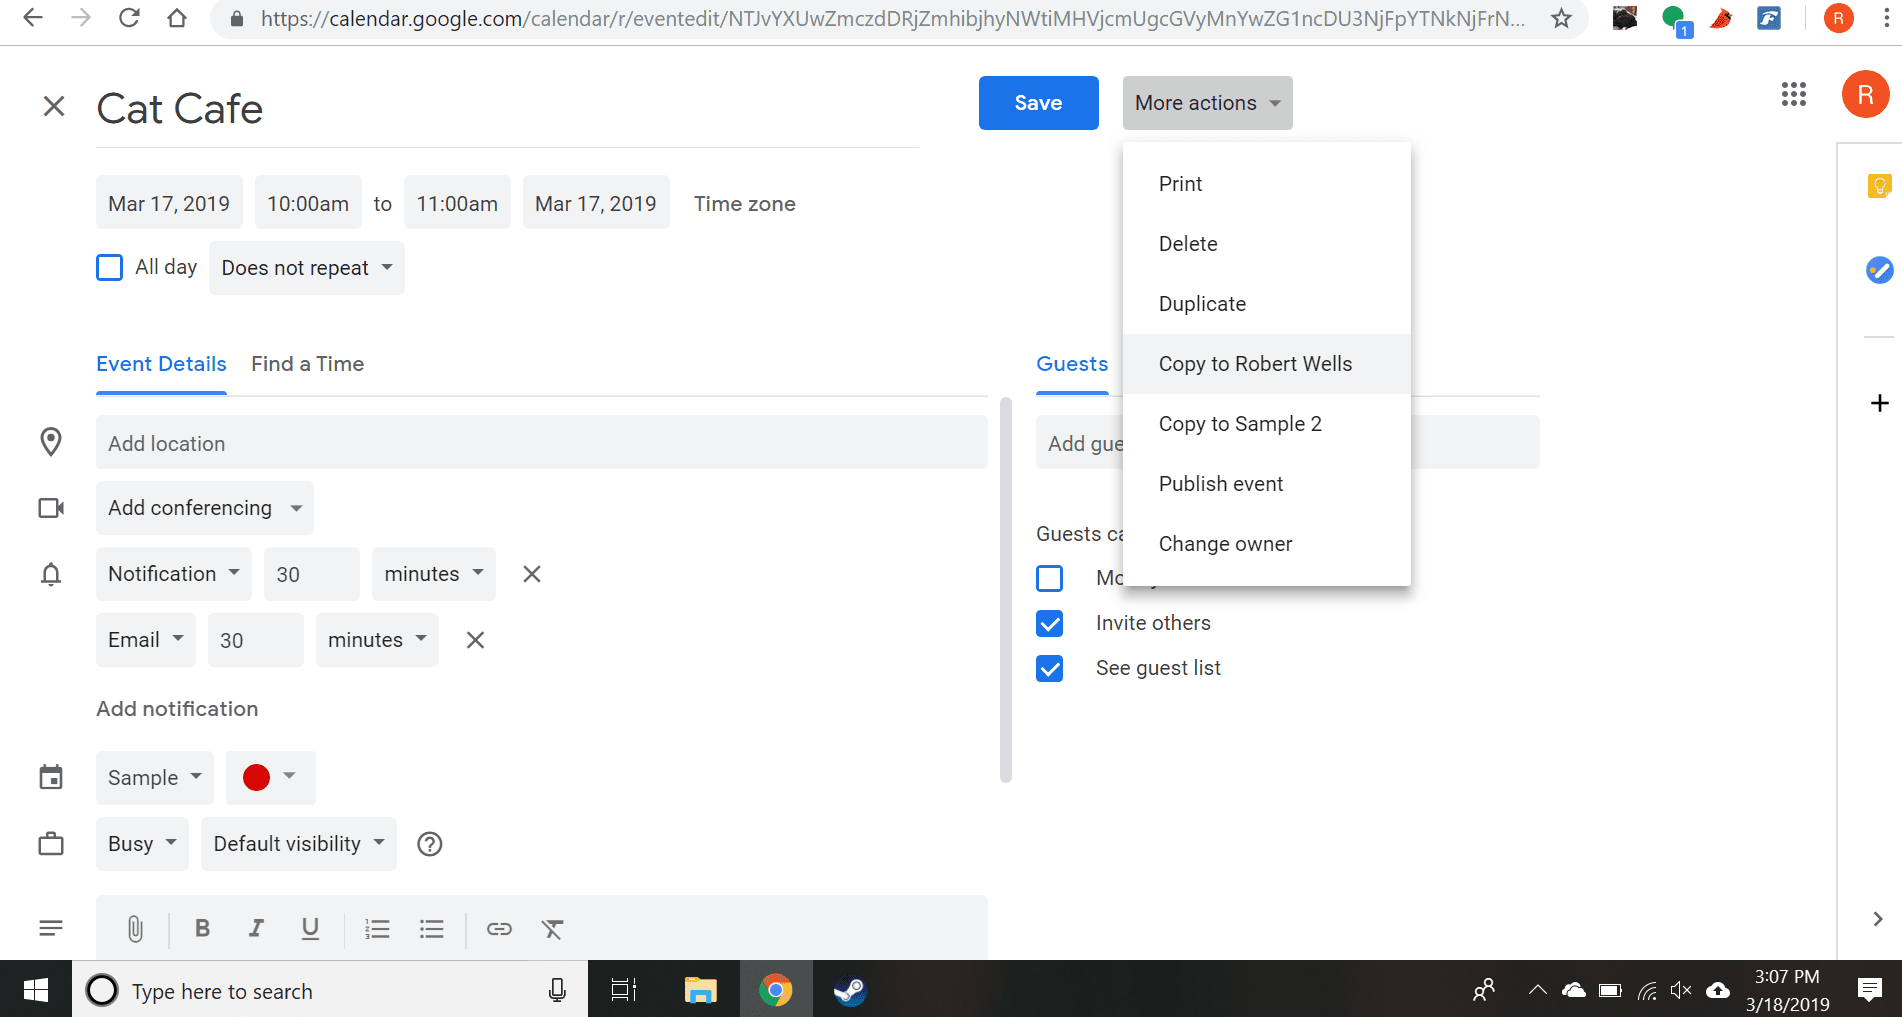 Select More Actions, then choose Duplicate or Copy to from the drop-down menu.